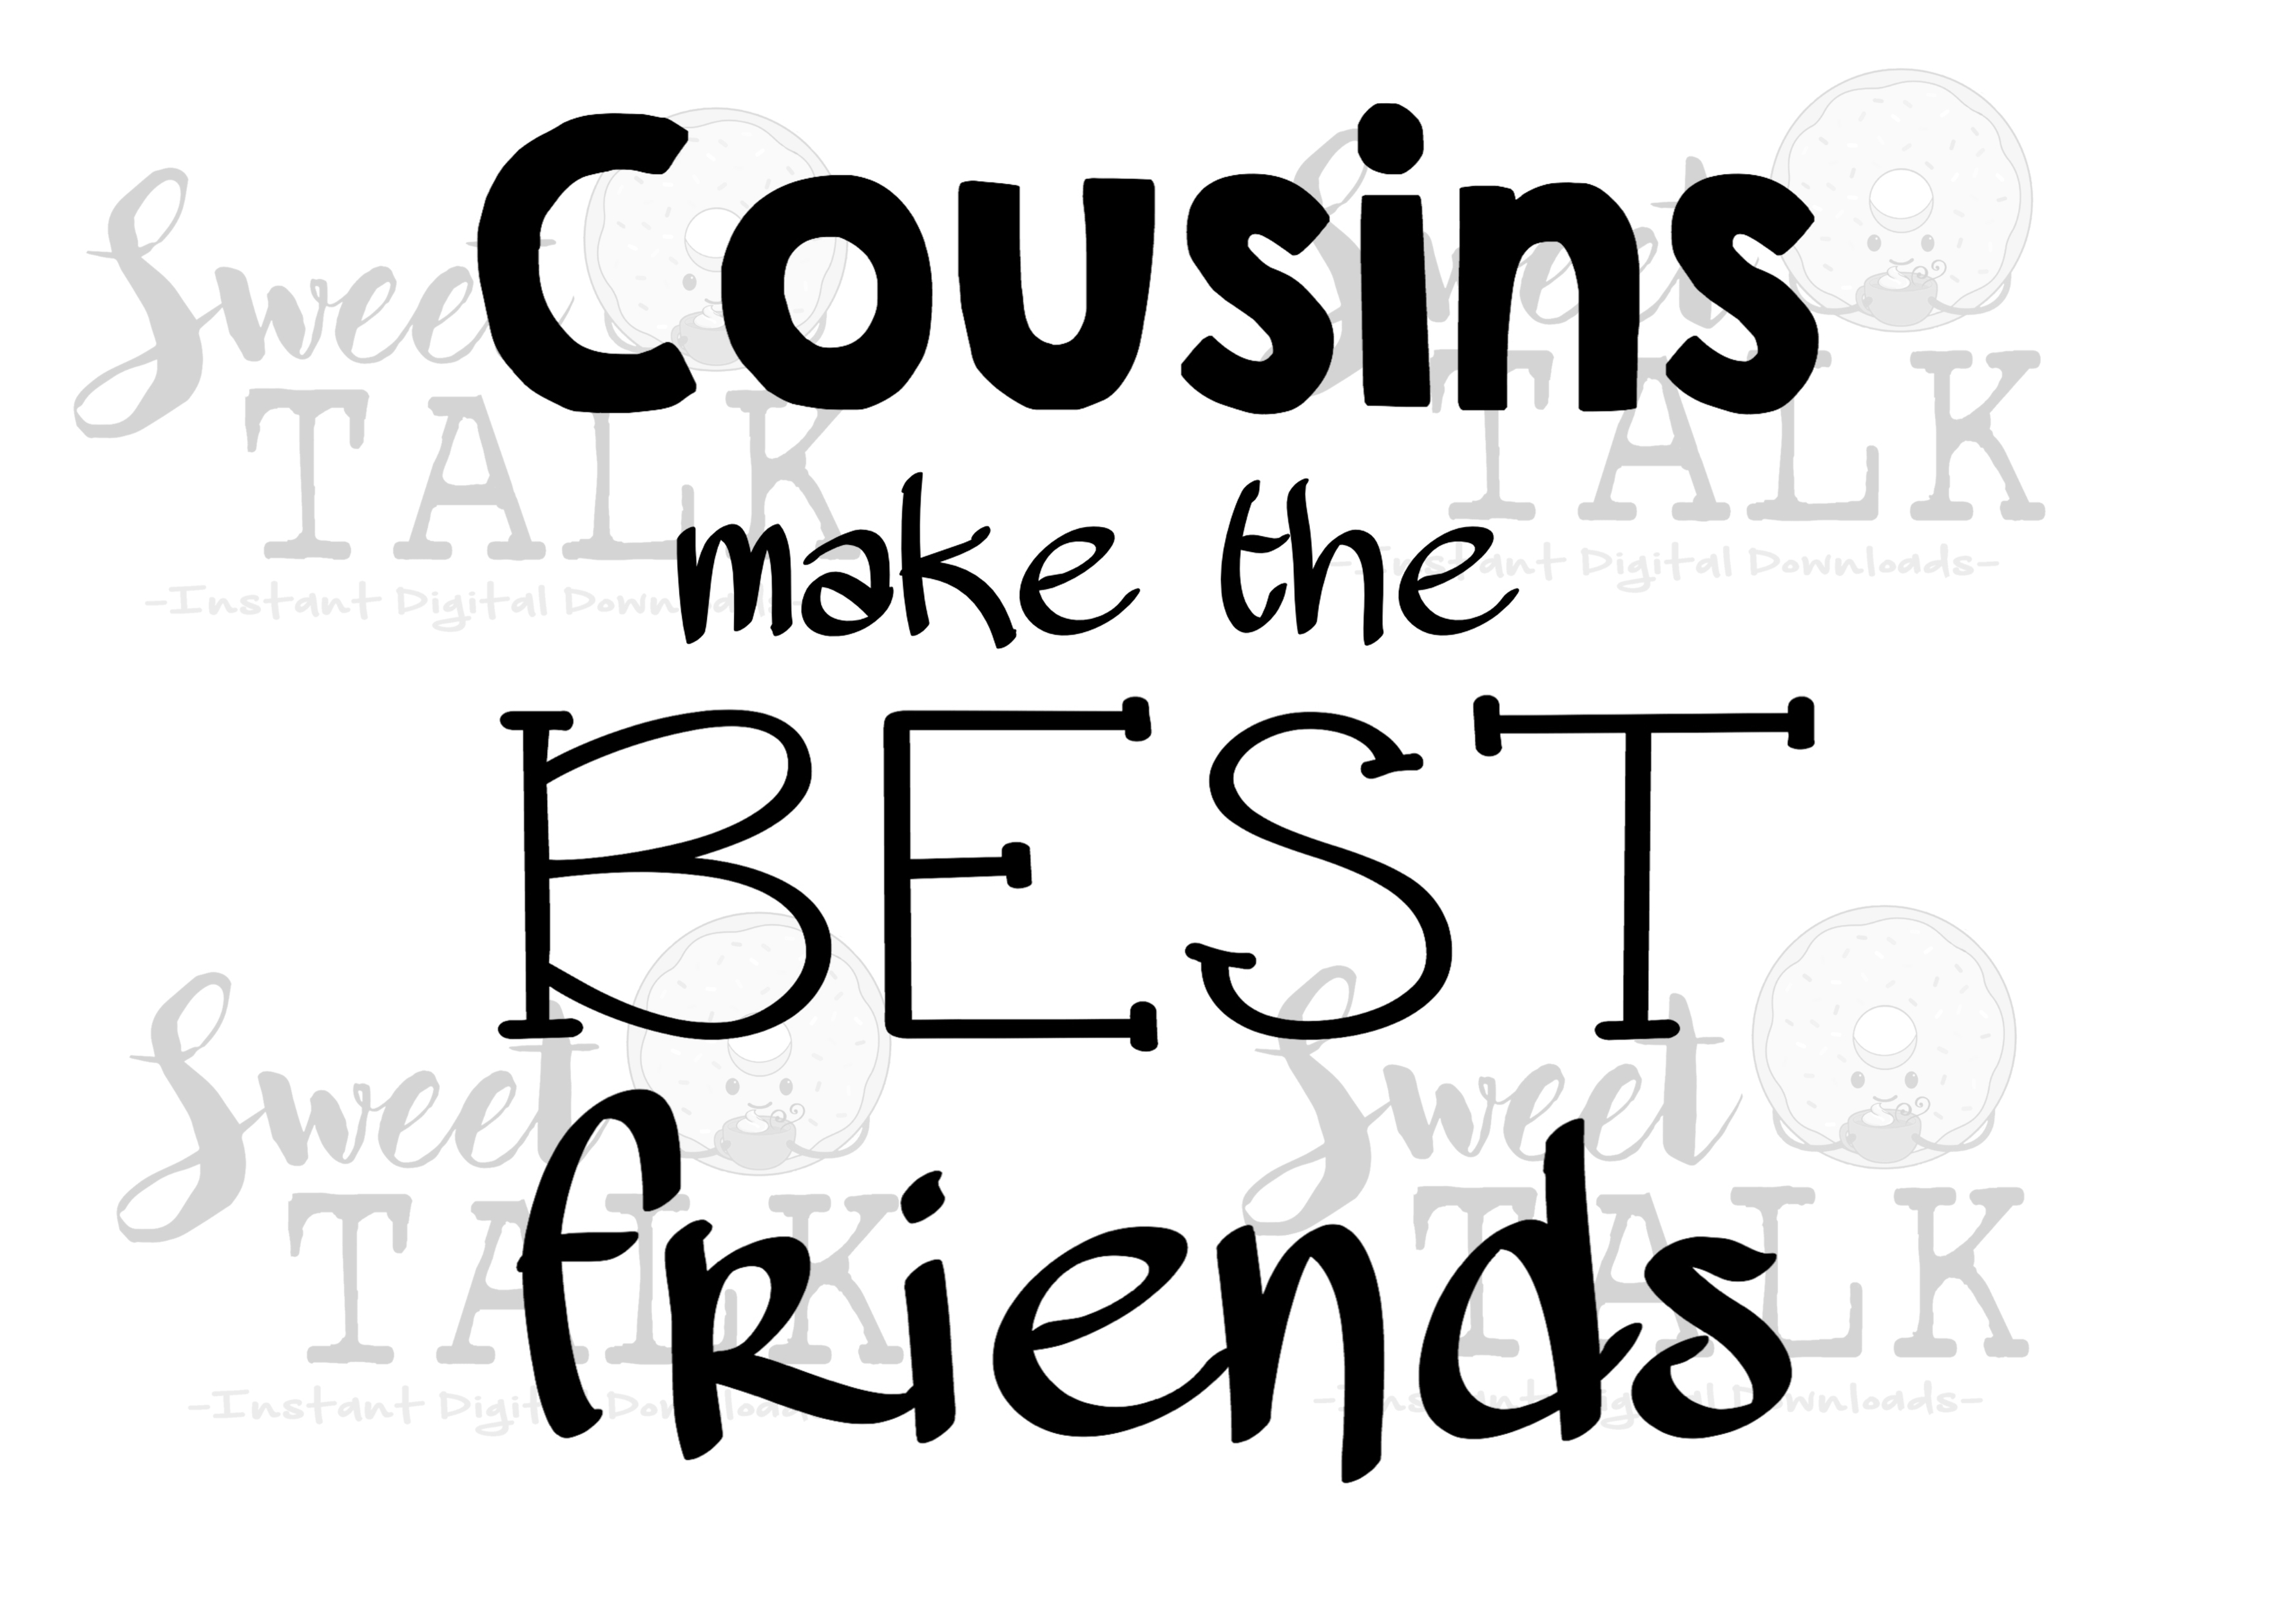 cousins make the best friendsinstant digital download